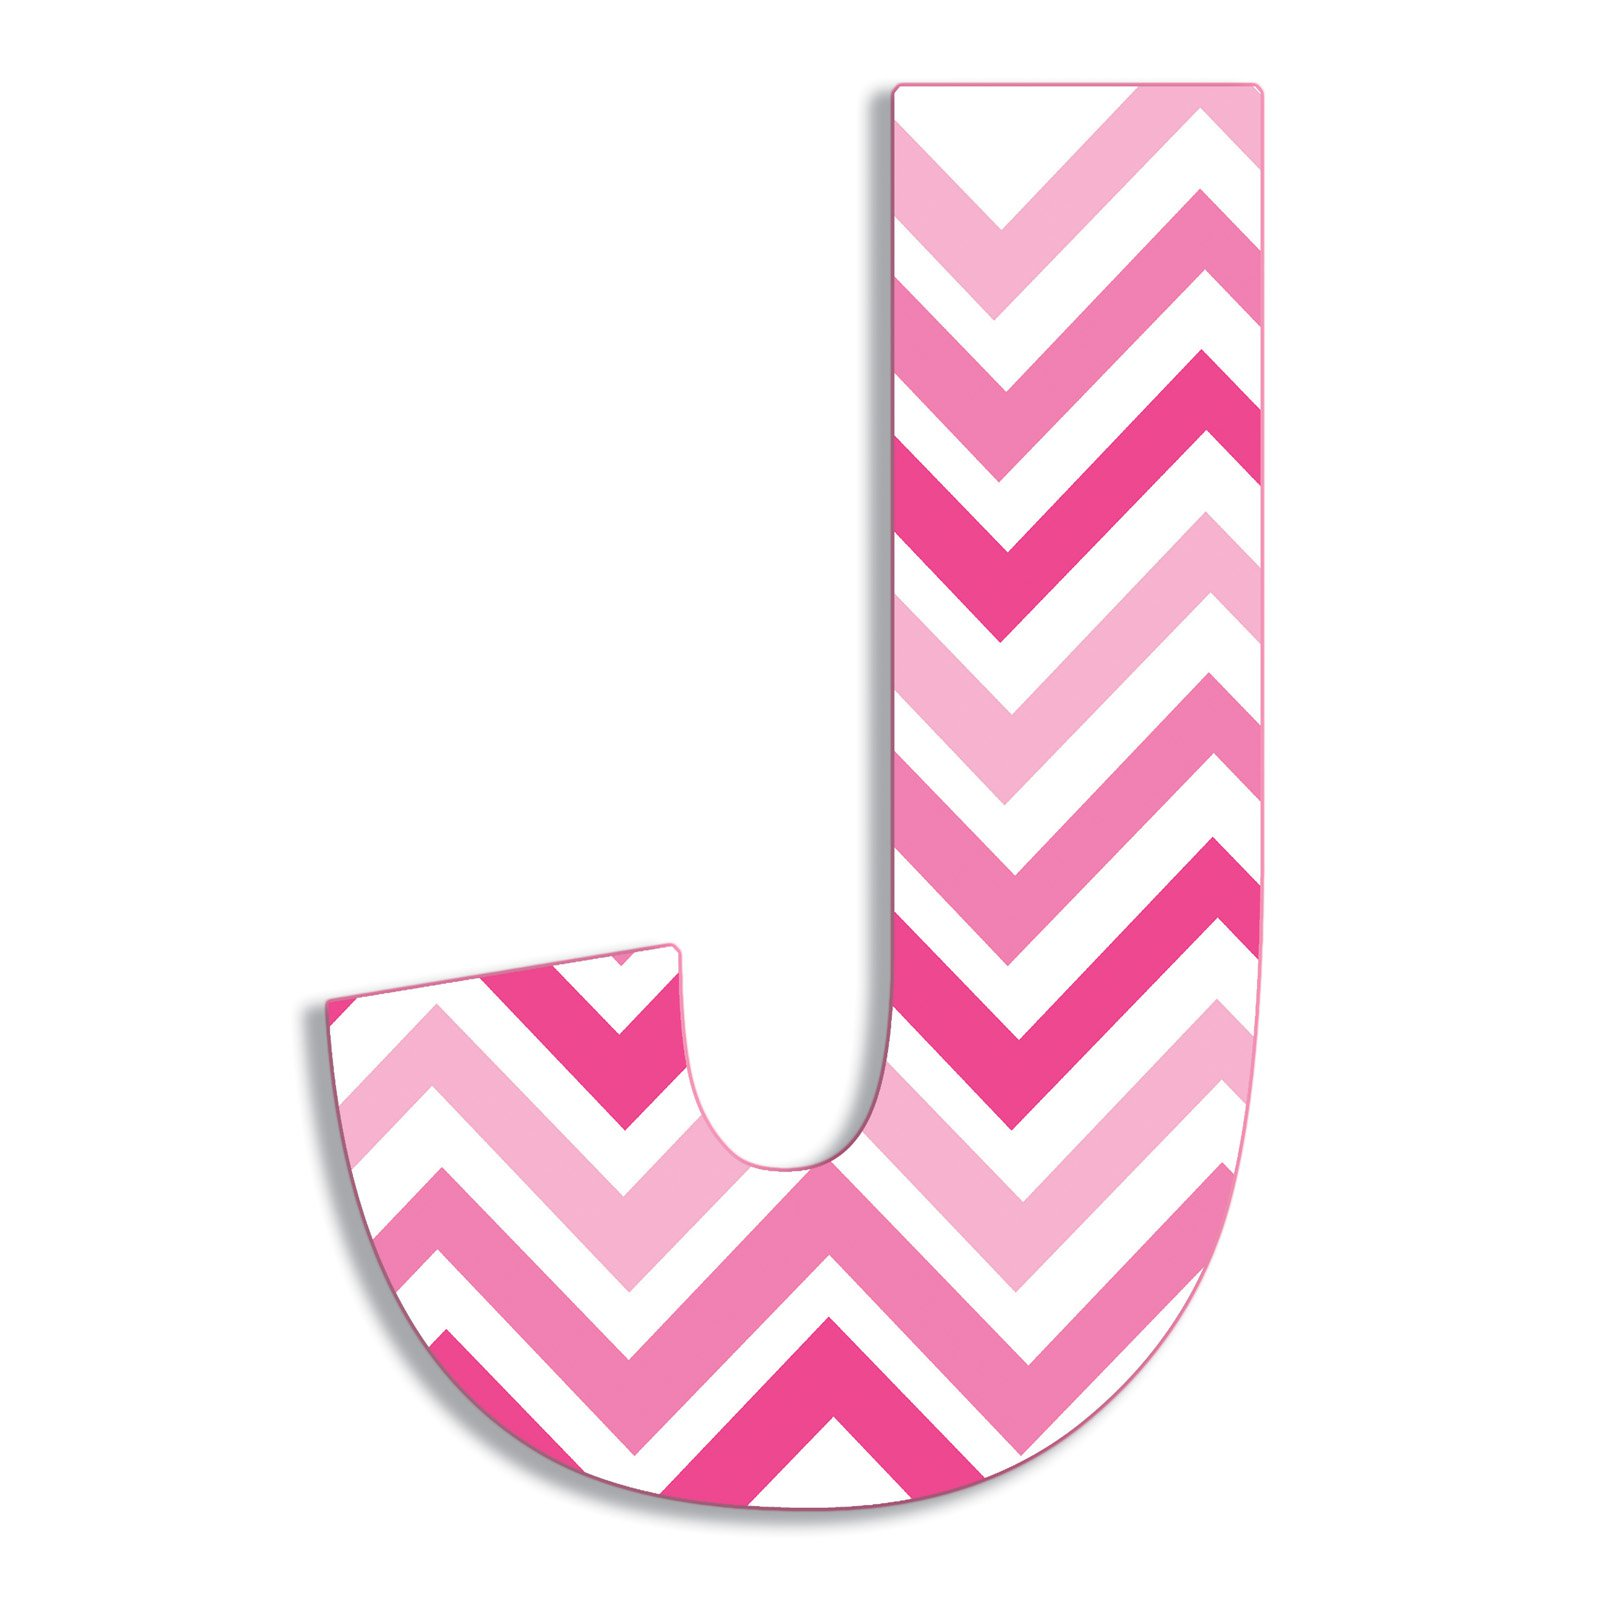 The Stupell Home Decor Collection Stupell Industries Oversized Pink Chevron Hanging Initial